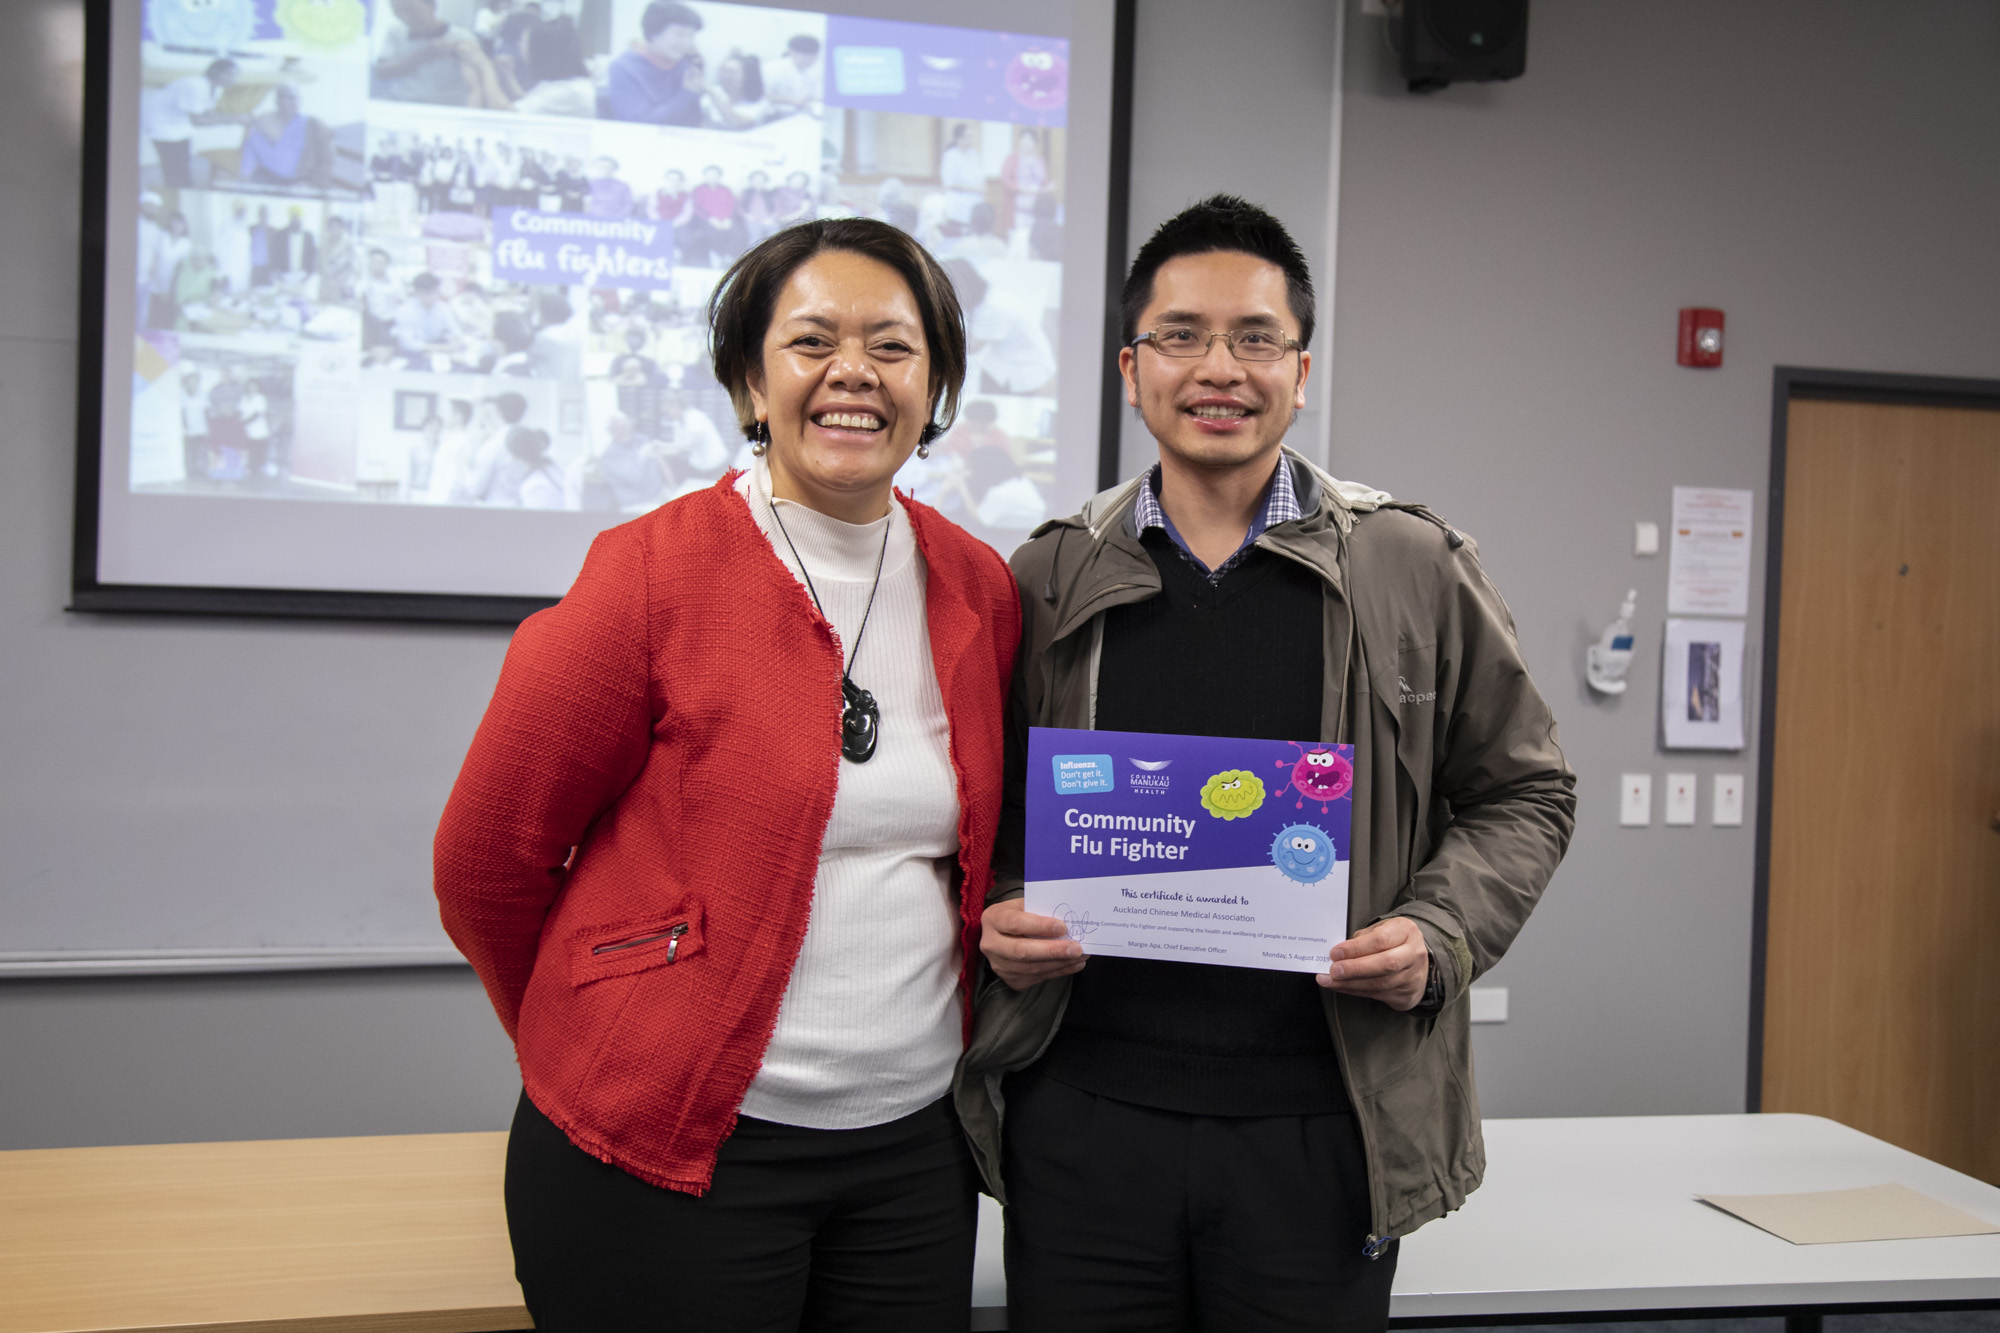 Flu Fighters Awards Ceremony - Mon 05 August 2019Manukau Superclinic, Manukau